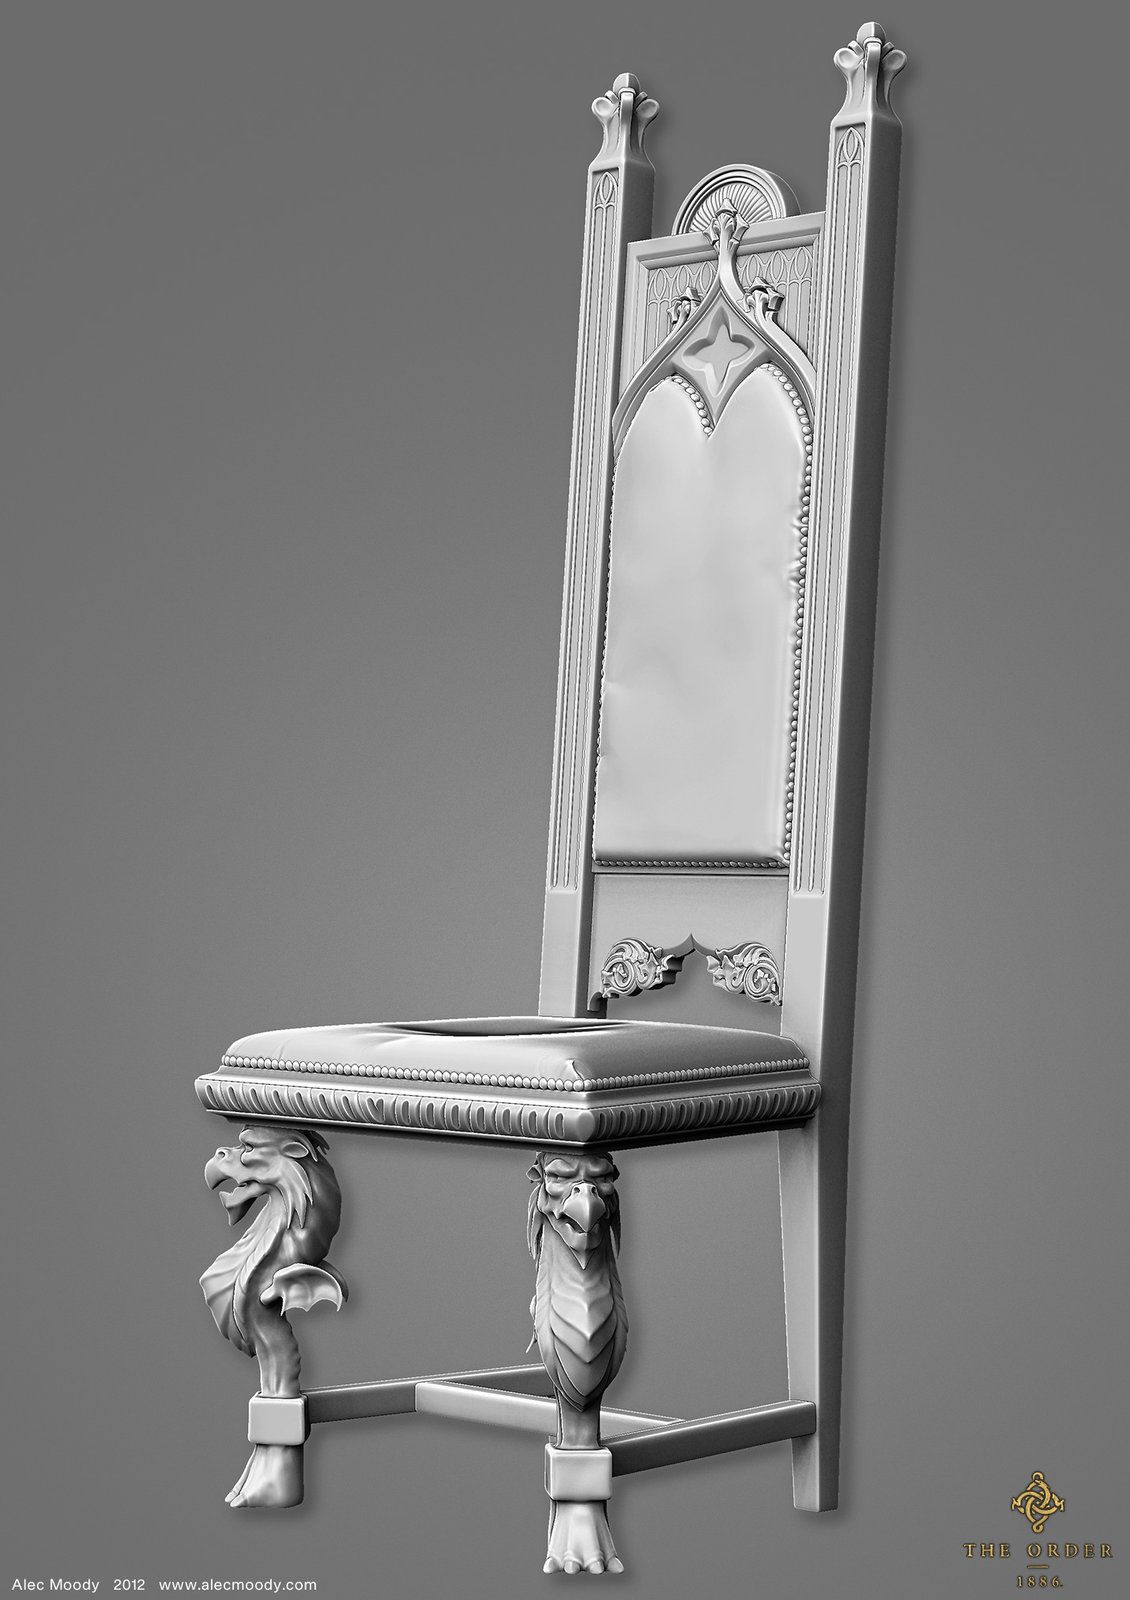 Knight's Chair for The Order 1886, Alec Moody on ArtStation at https://www.artstation.com/artwork/knight-s-chair-for-the-order-1886